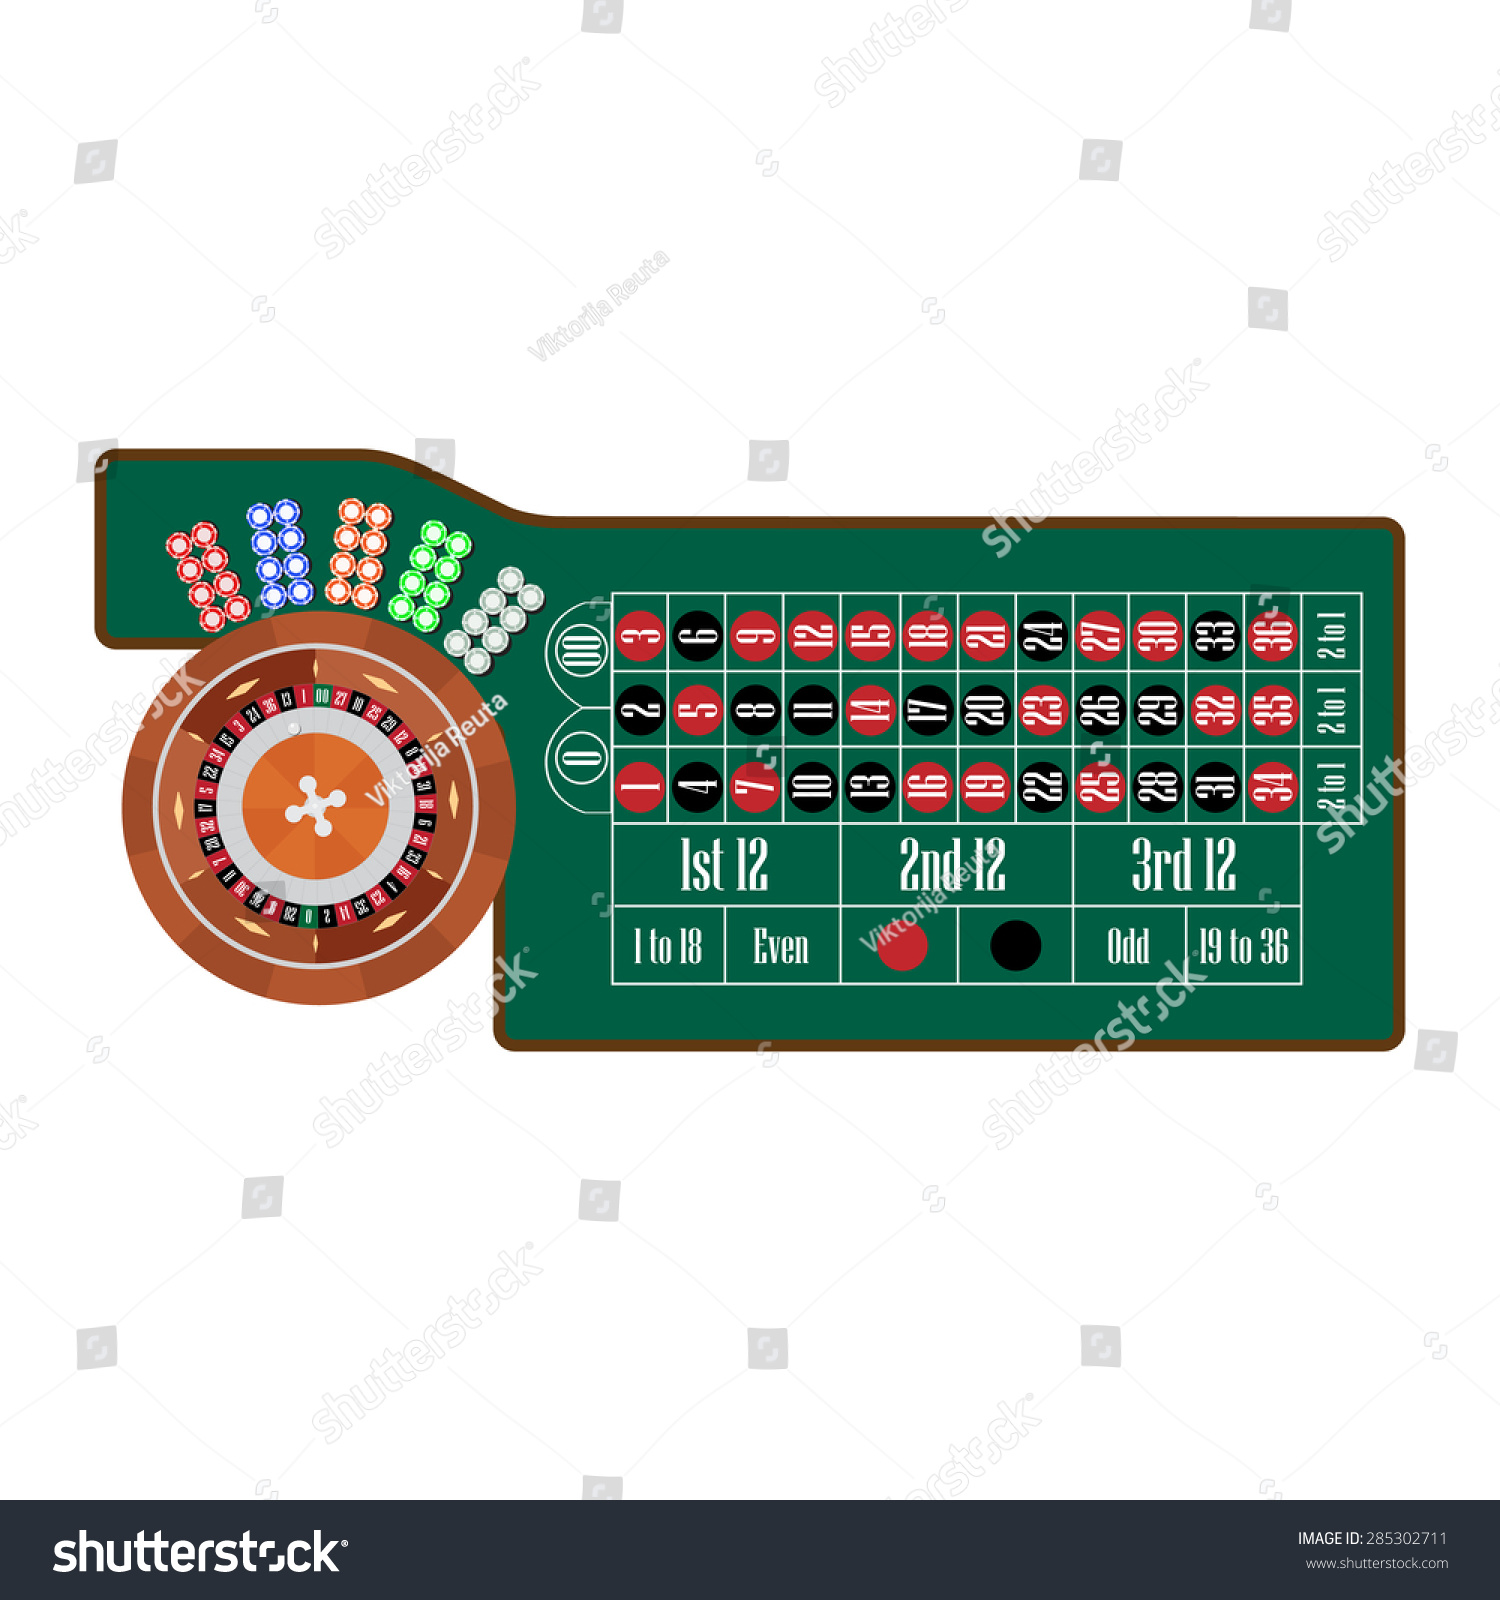 Traditional european roulette table vector illustration stock vector - American Roulette Table With Roulette Wheel And Ball Different Colors Chips Vector Illustration Gambling